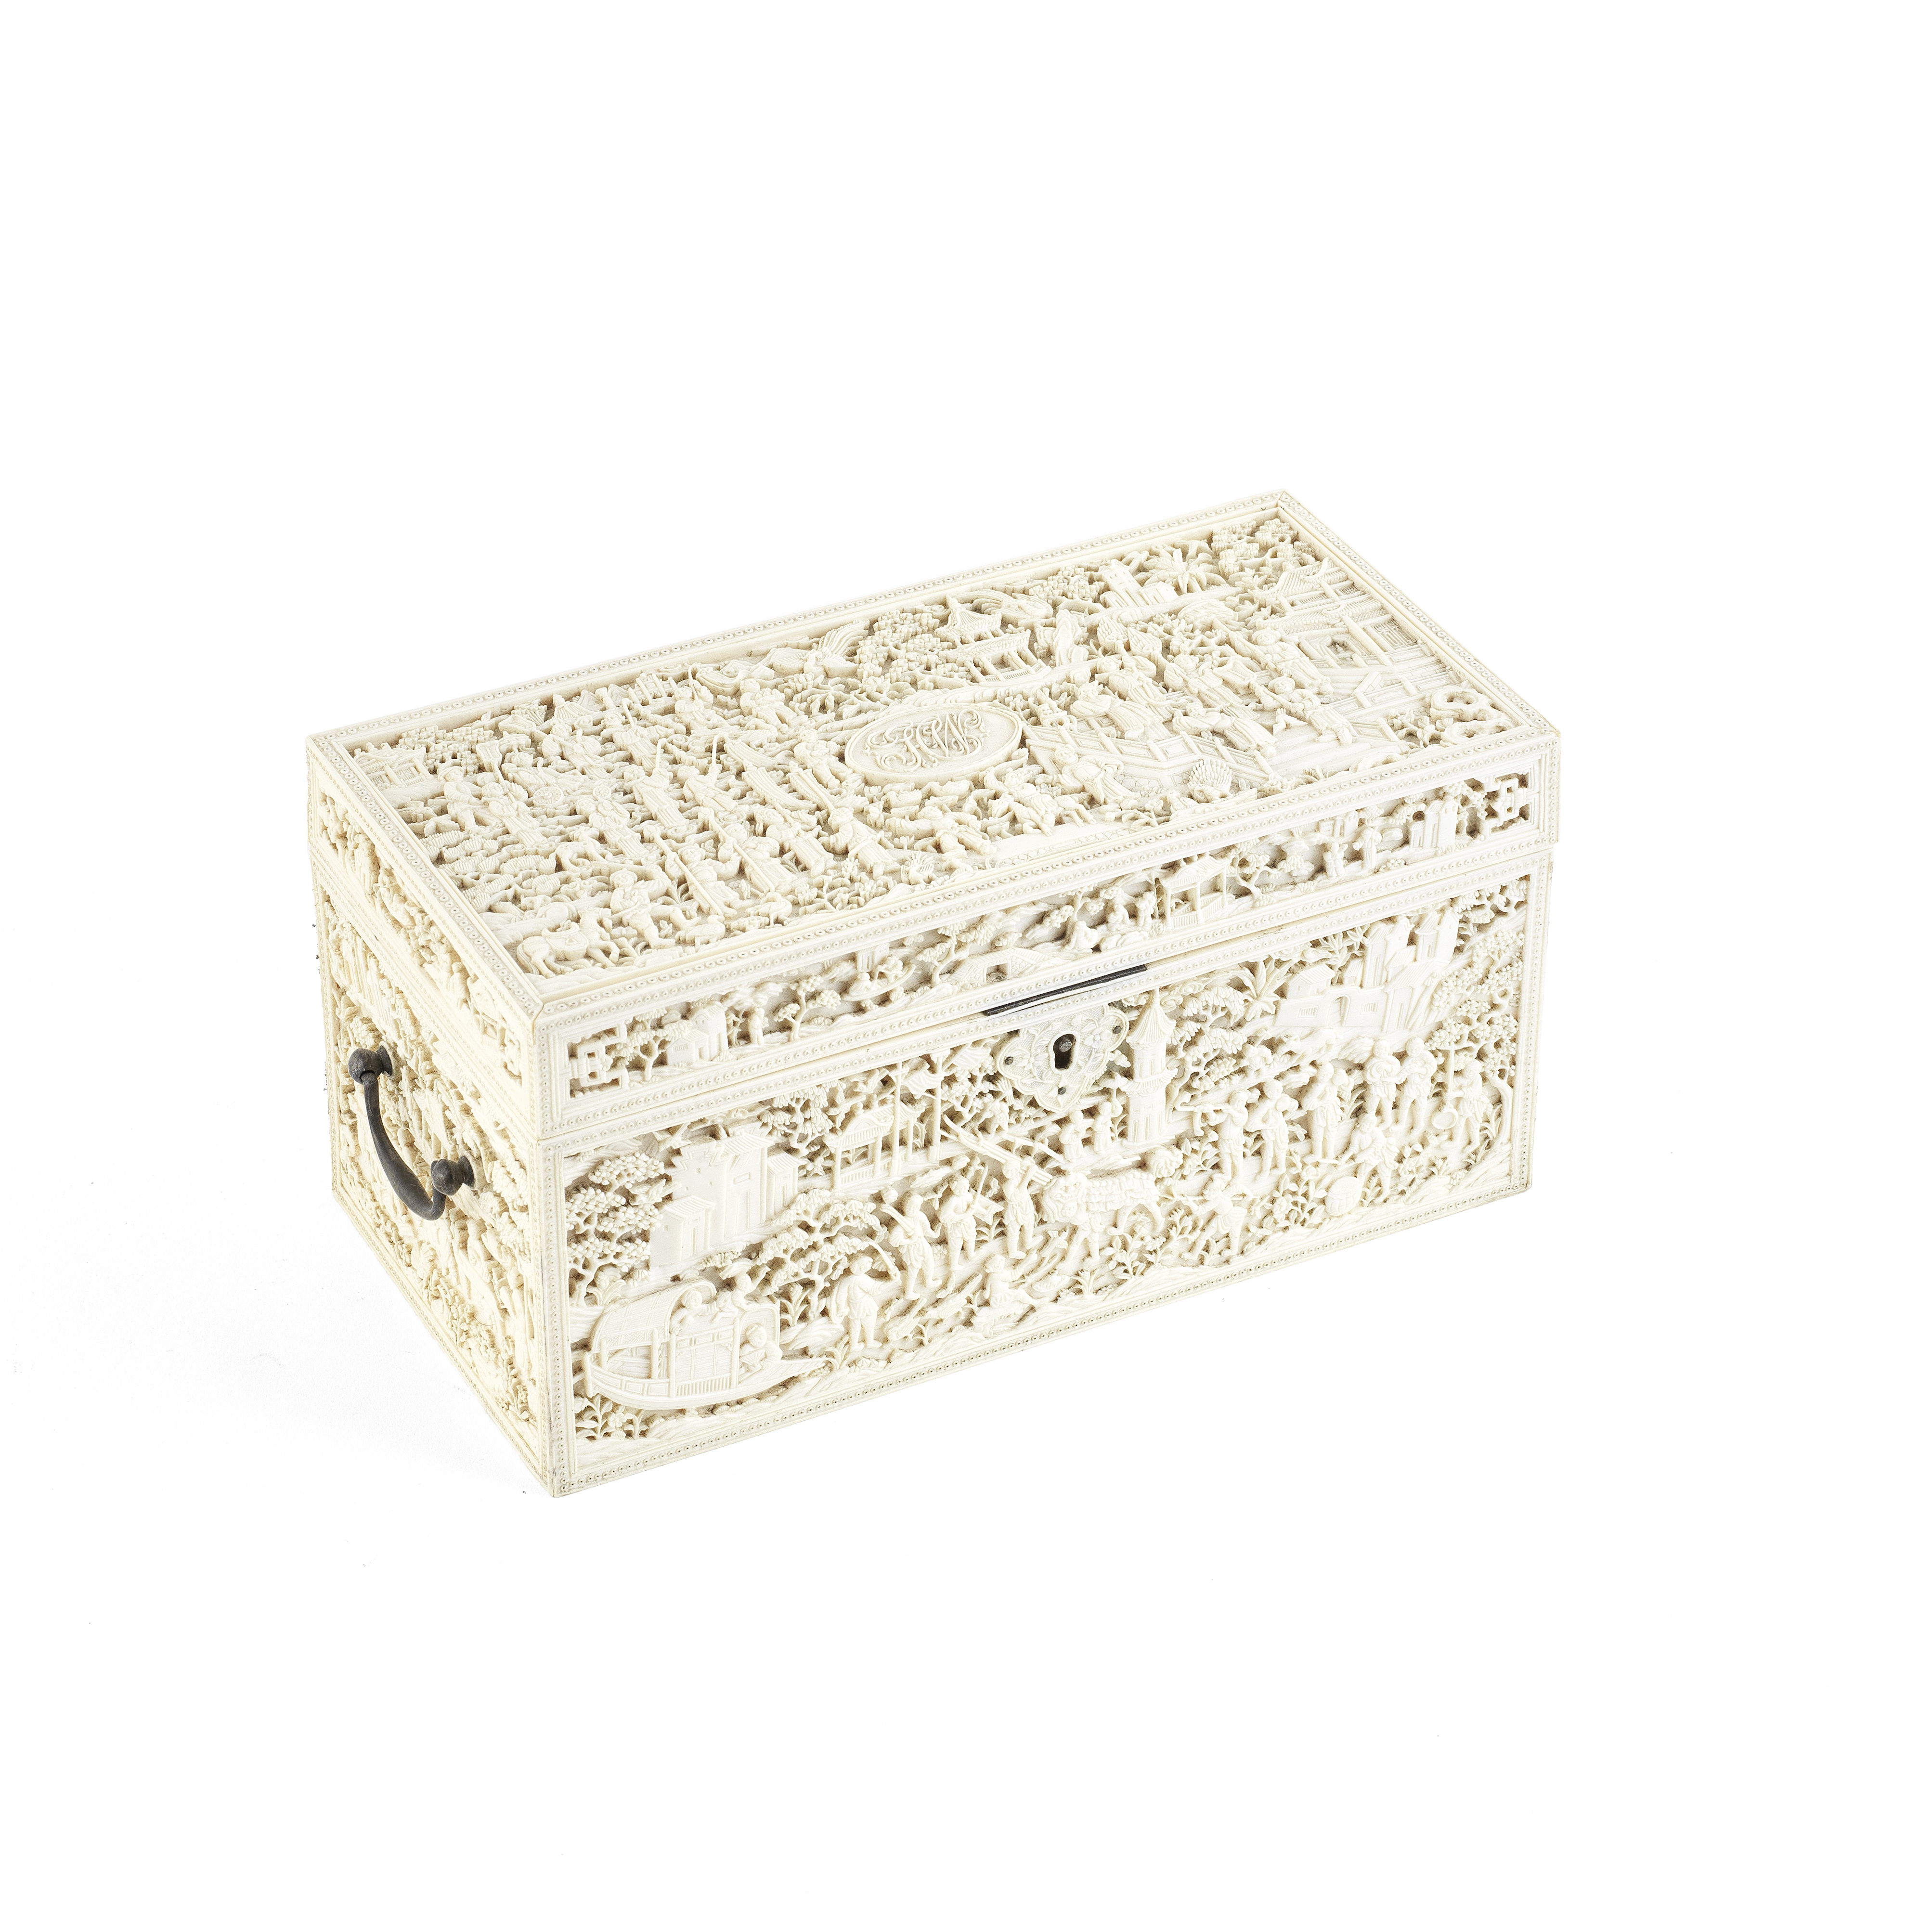 A CARVED MONOGRAMMED IVORY BOX AND HINGED COVER Early 19th century